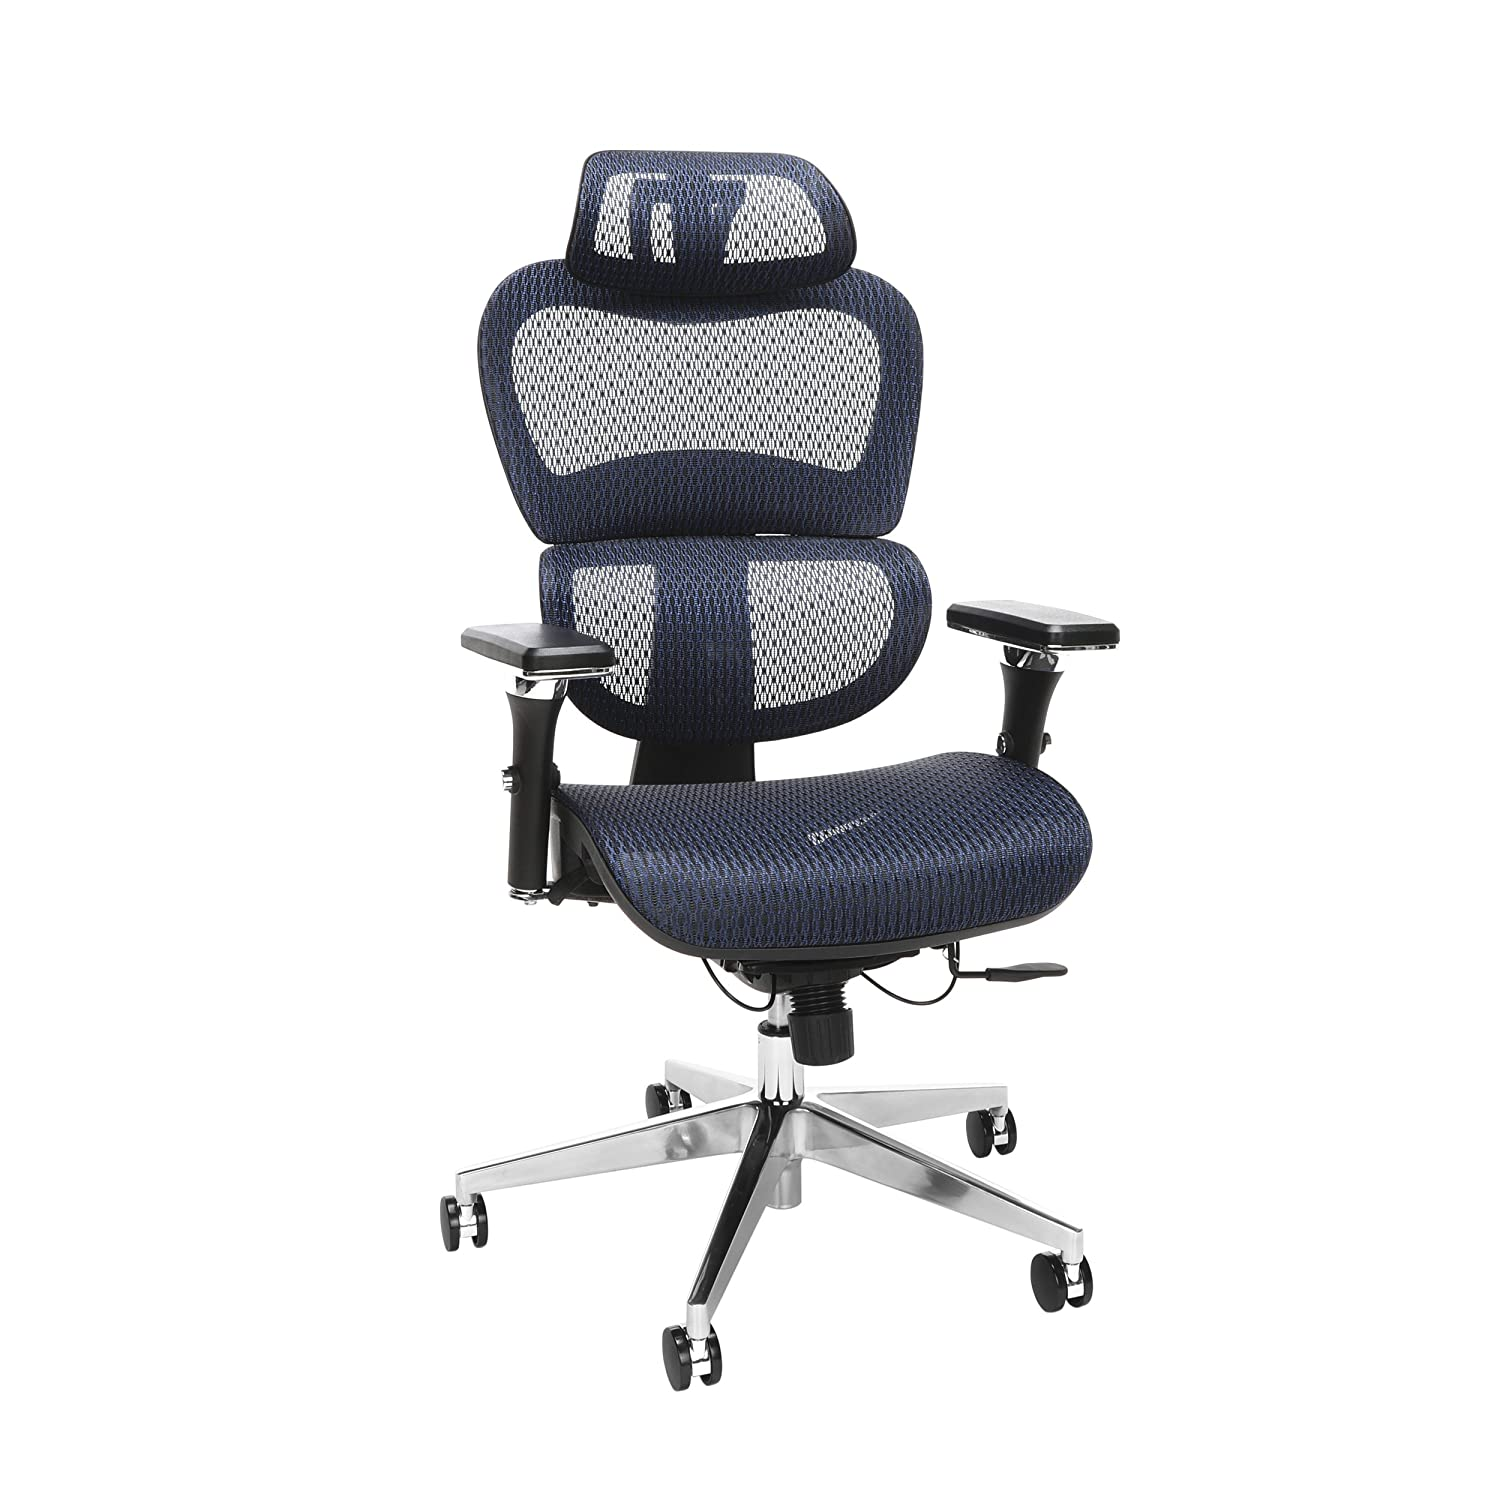 Adjustable Chairs Online Shopping For Clothing Shoes